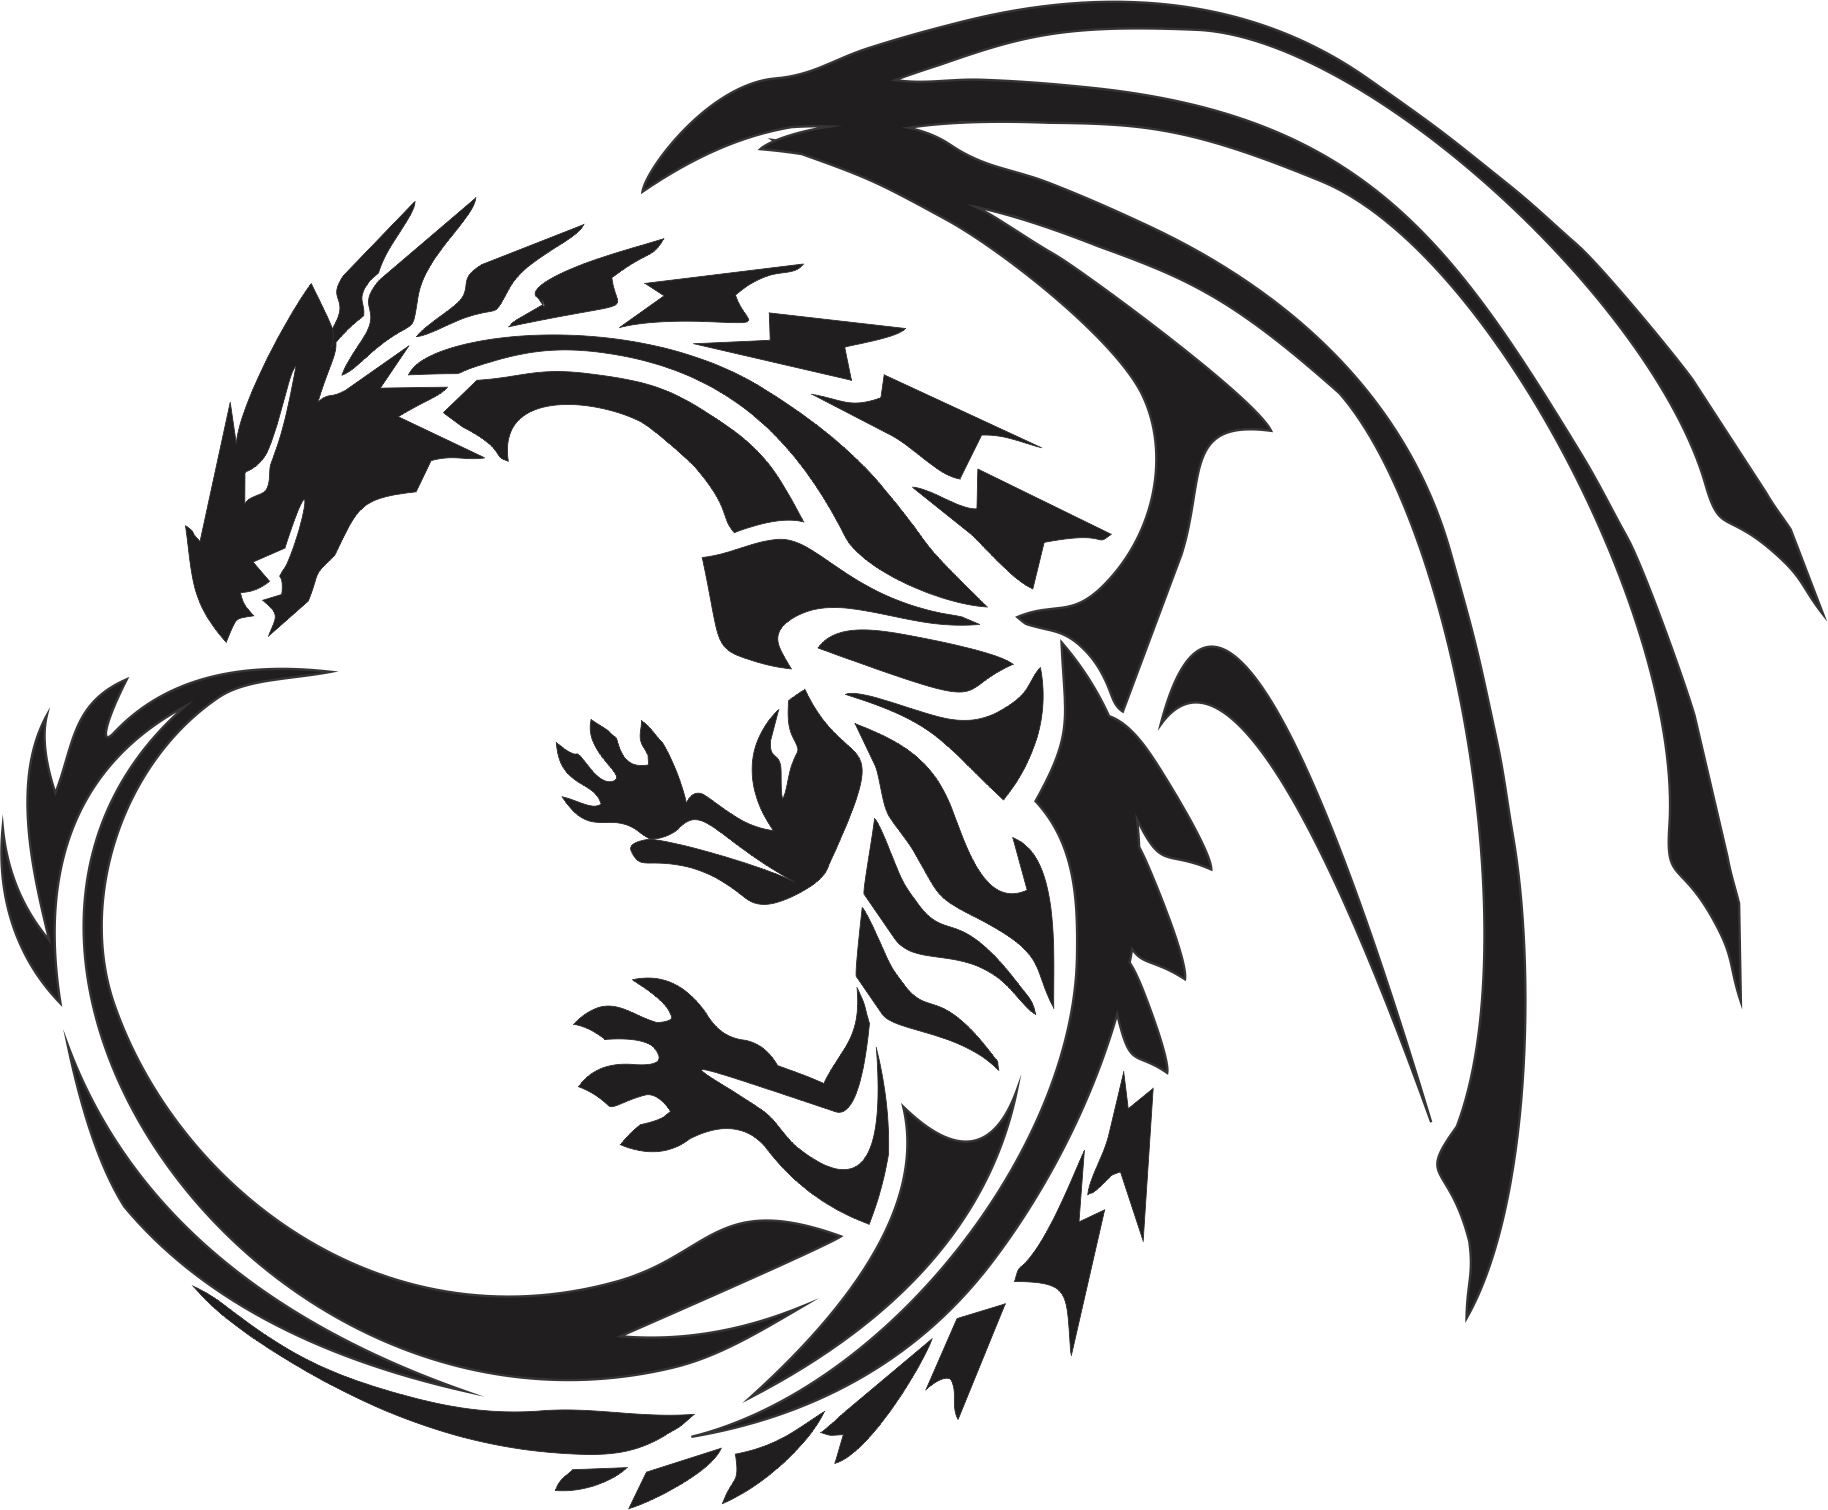 Dragon png images. Silhouette tattoos at getdrawings